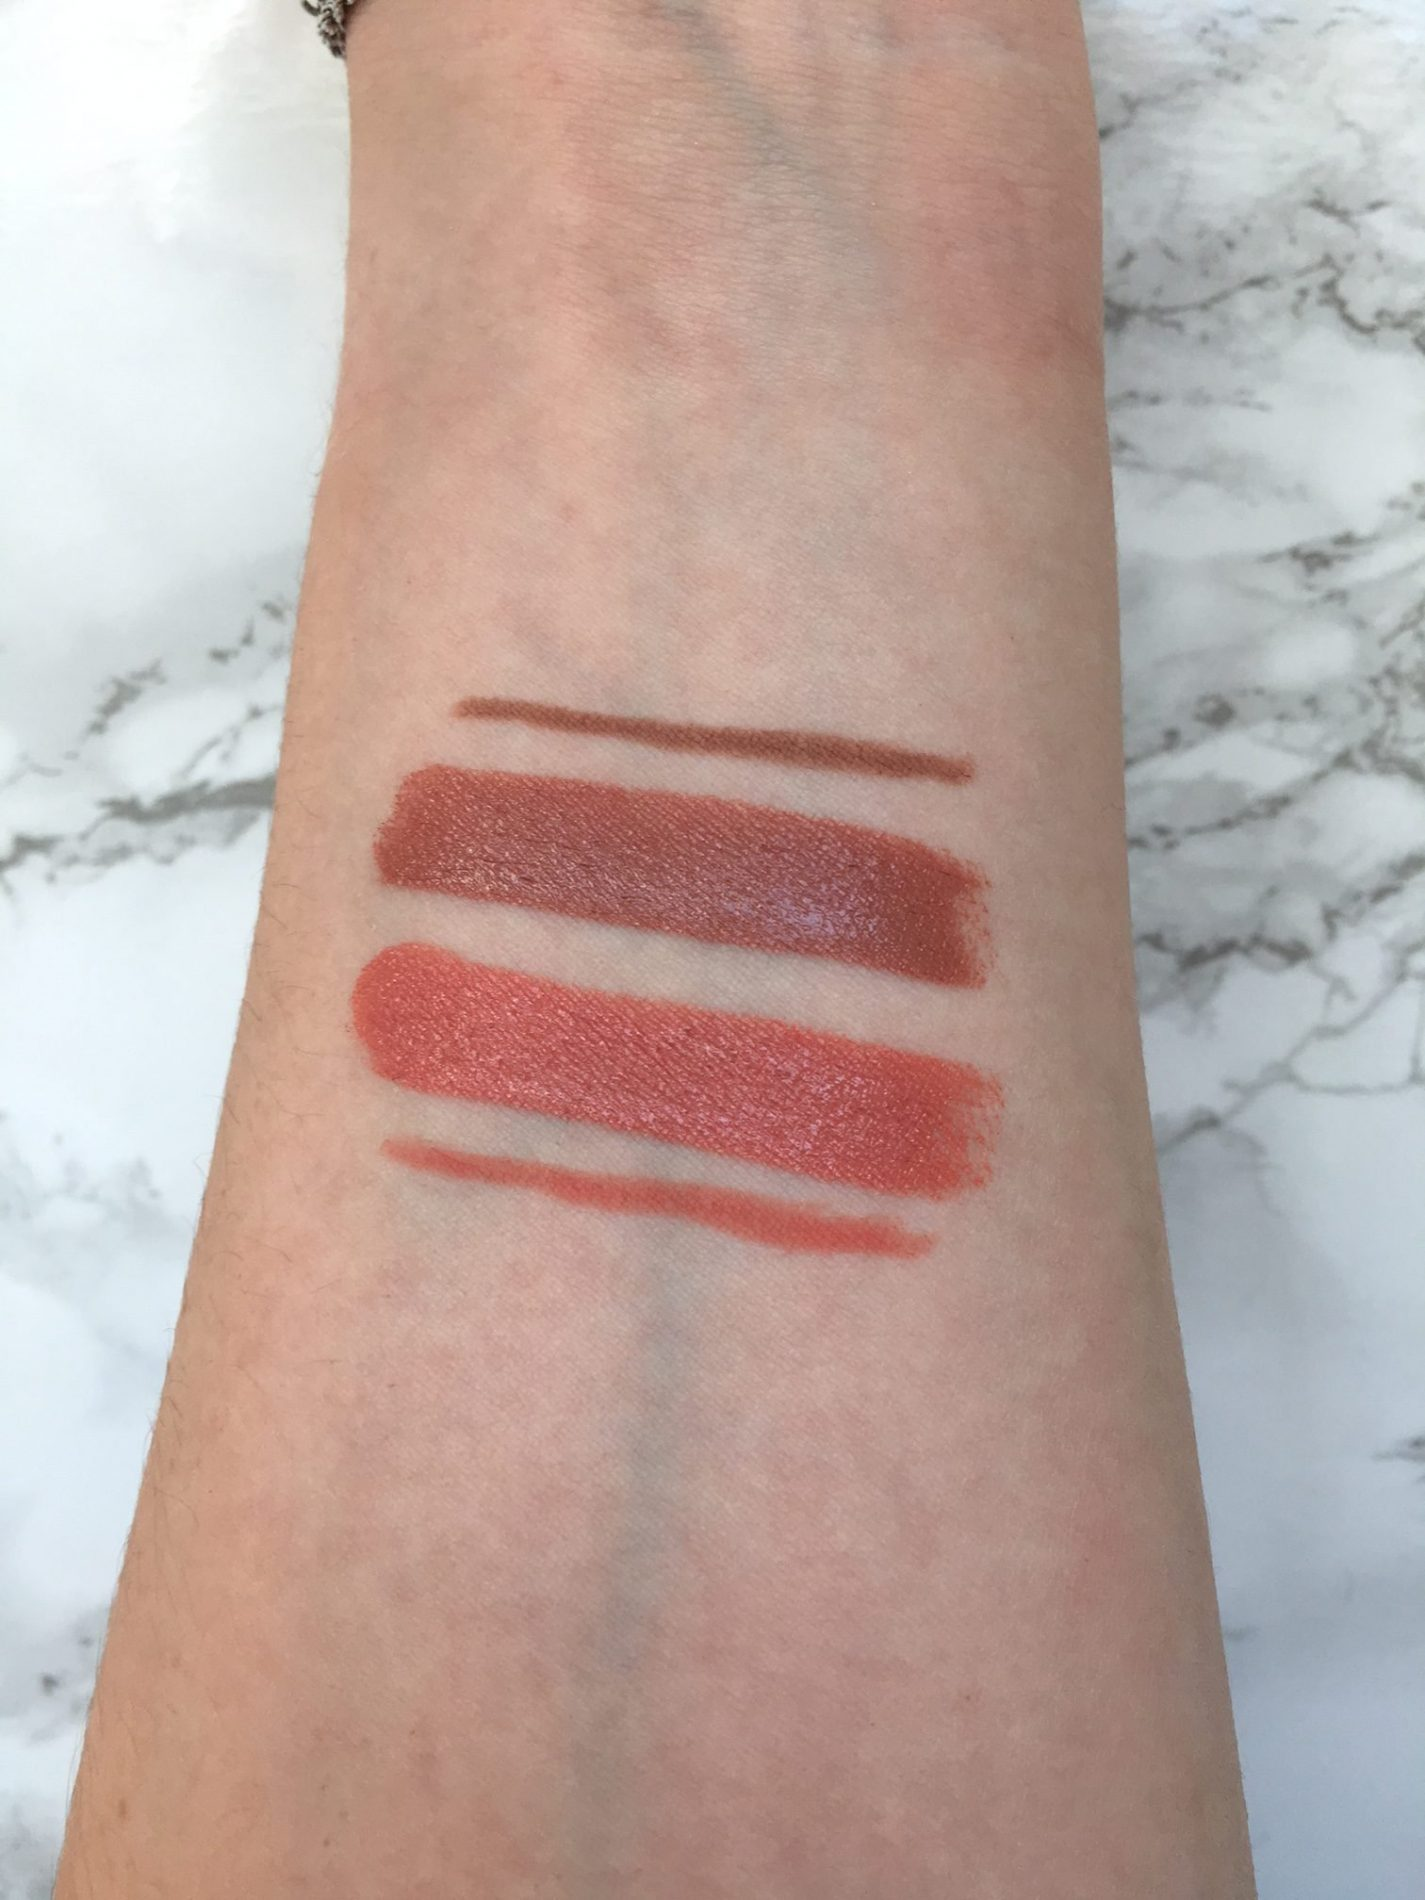 KKW Beauty Classic Collection Palette, Lipsticks & Lipliners | Review 9